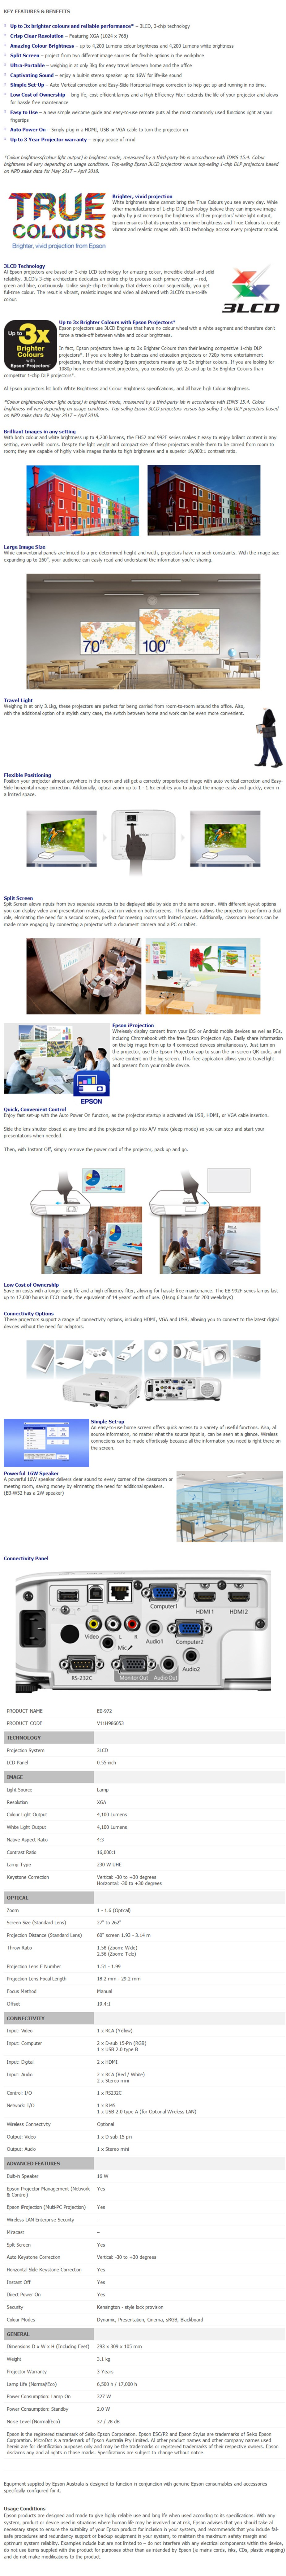 Epson EB-972 XGA 3LCD Corporate Portable Multimedia Projector - Overview 1